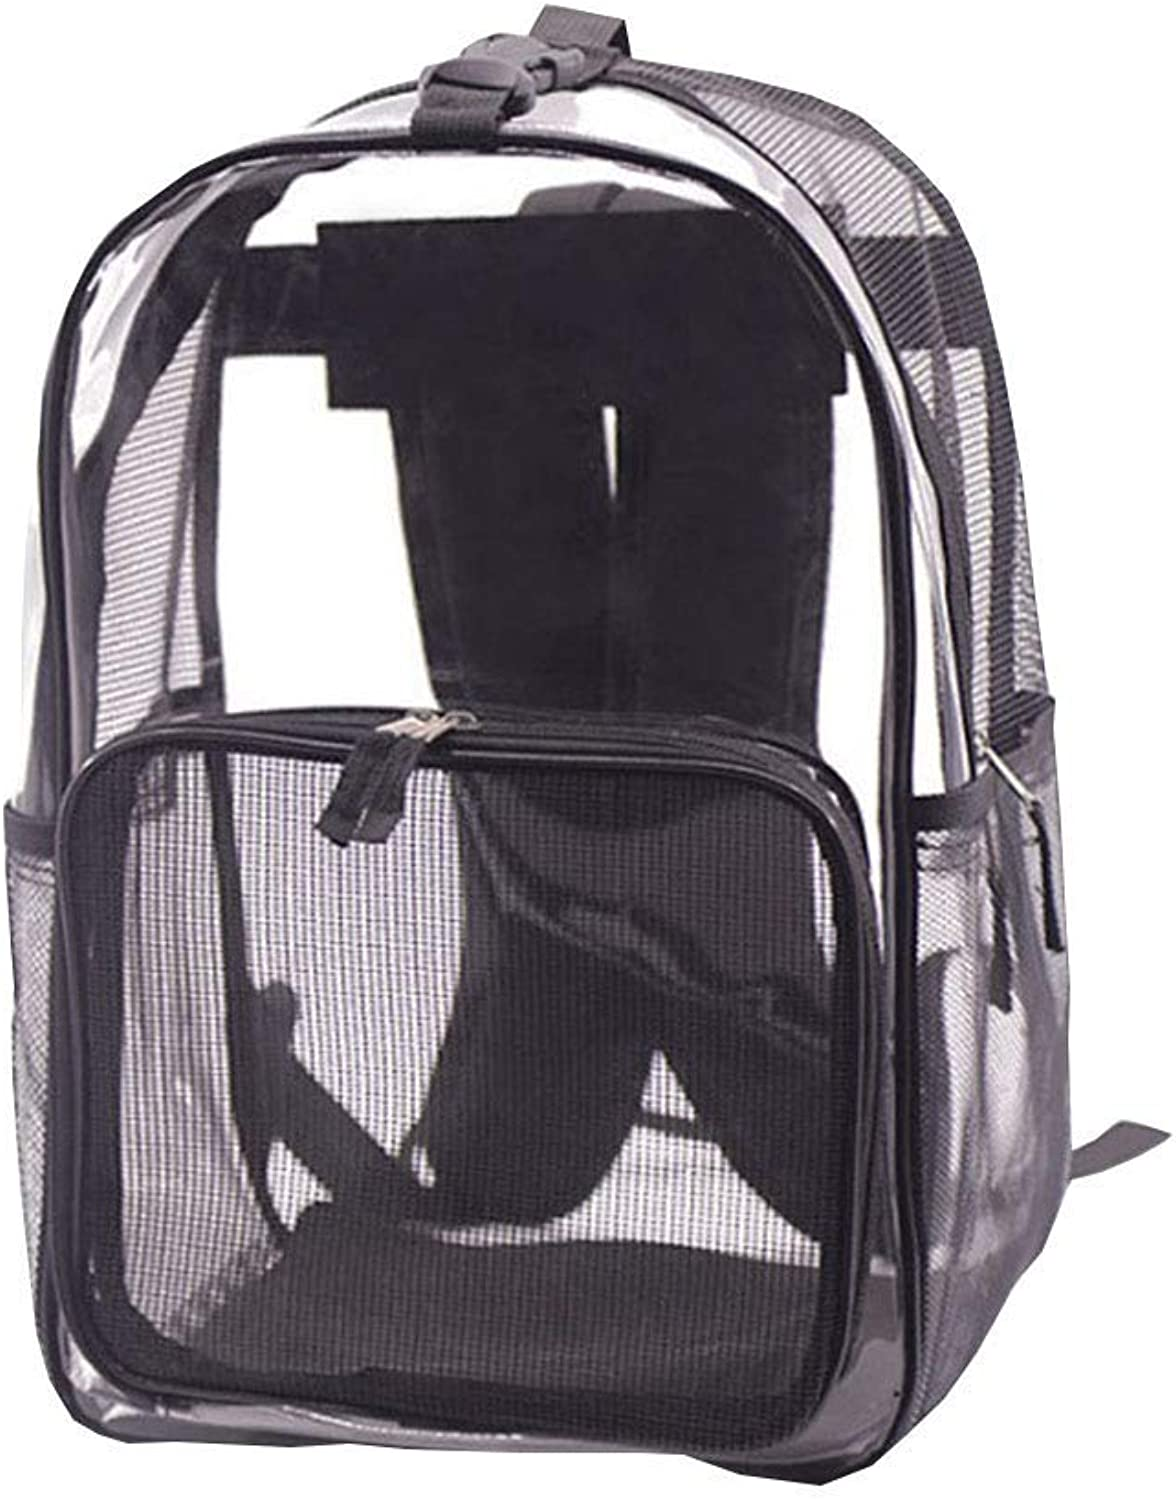 Qian Fei QF New Pet Backpack, Cat And Dog Universal Transparent Backpack, Travel Bag, Out Of The Cat Bag Wang Xingren Bag